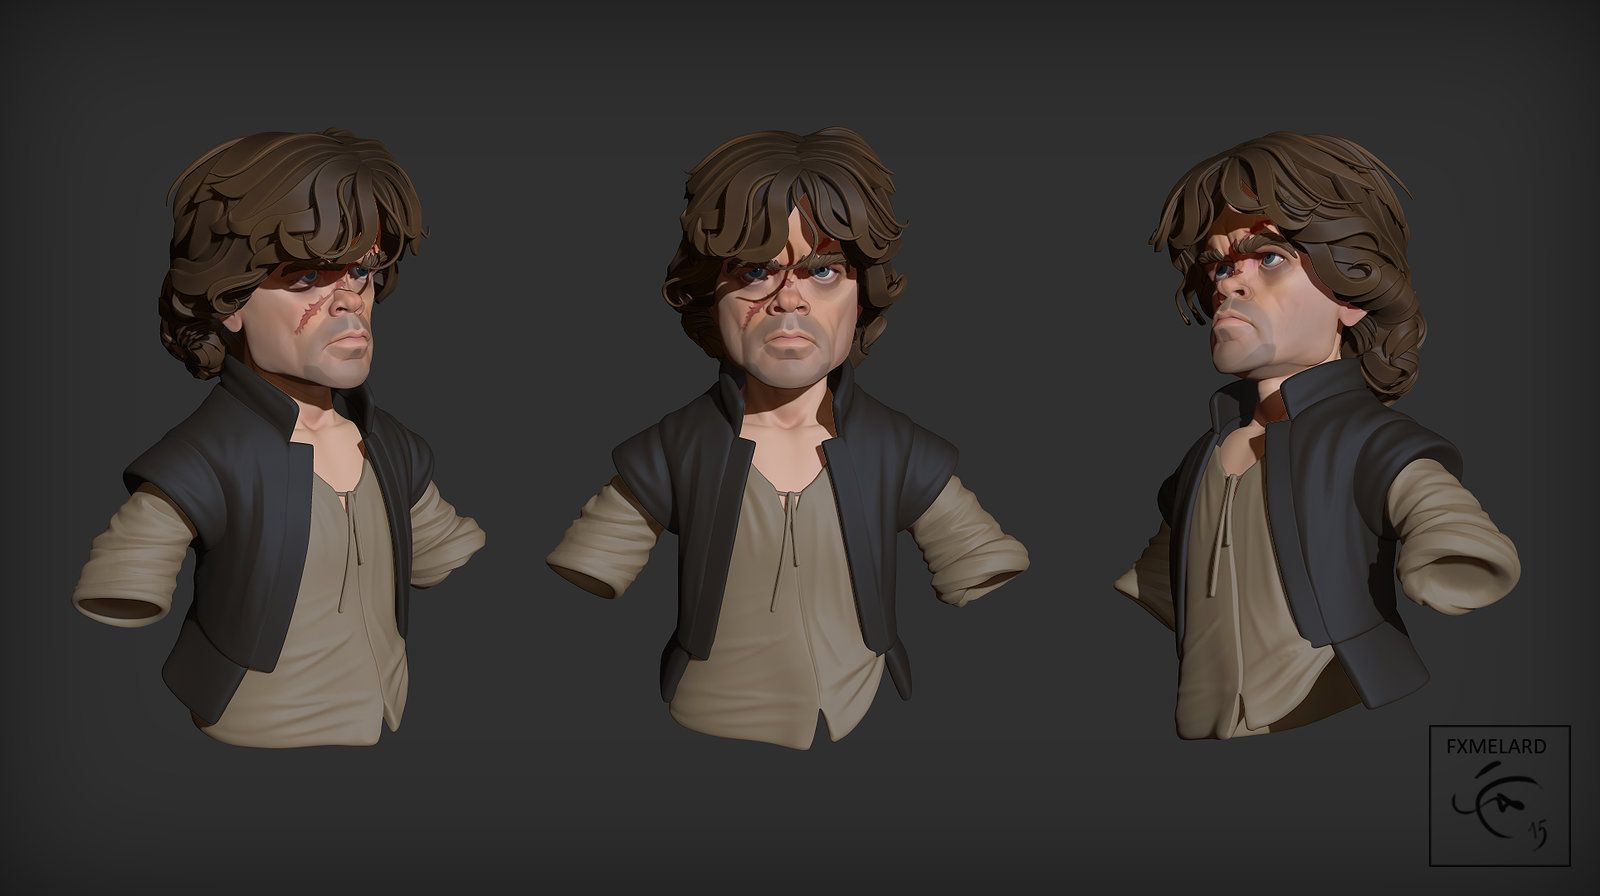 Tyrion has done it, FX Melard on ArtStation at https://www.artstation.com/artwork/tyrion-has-done-it